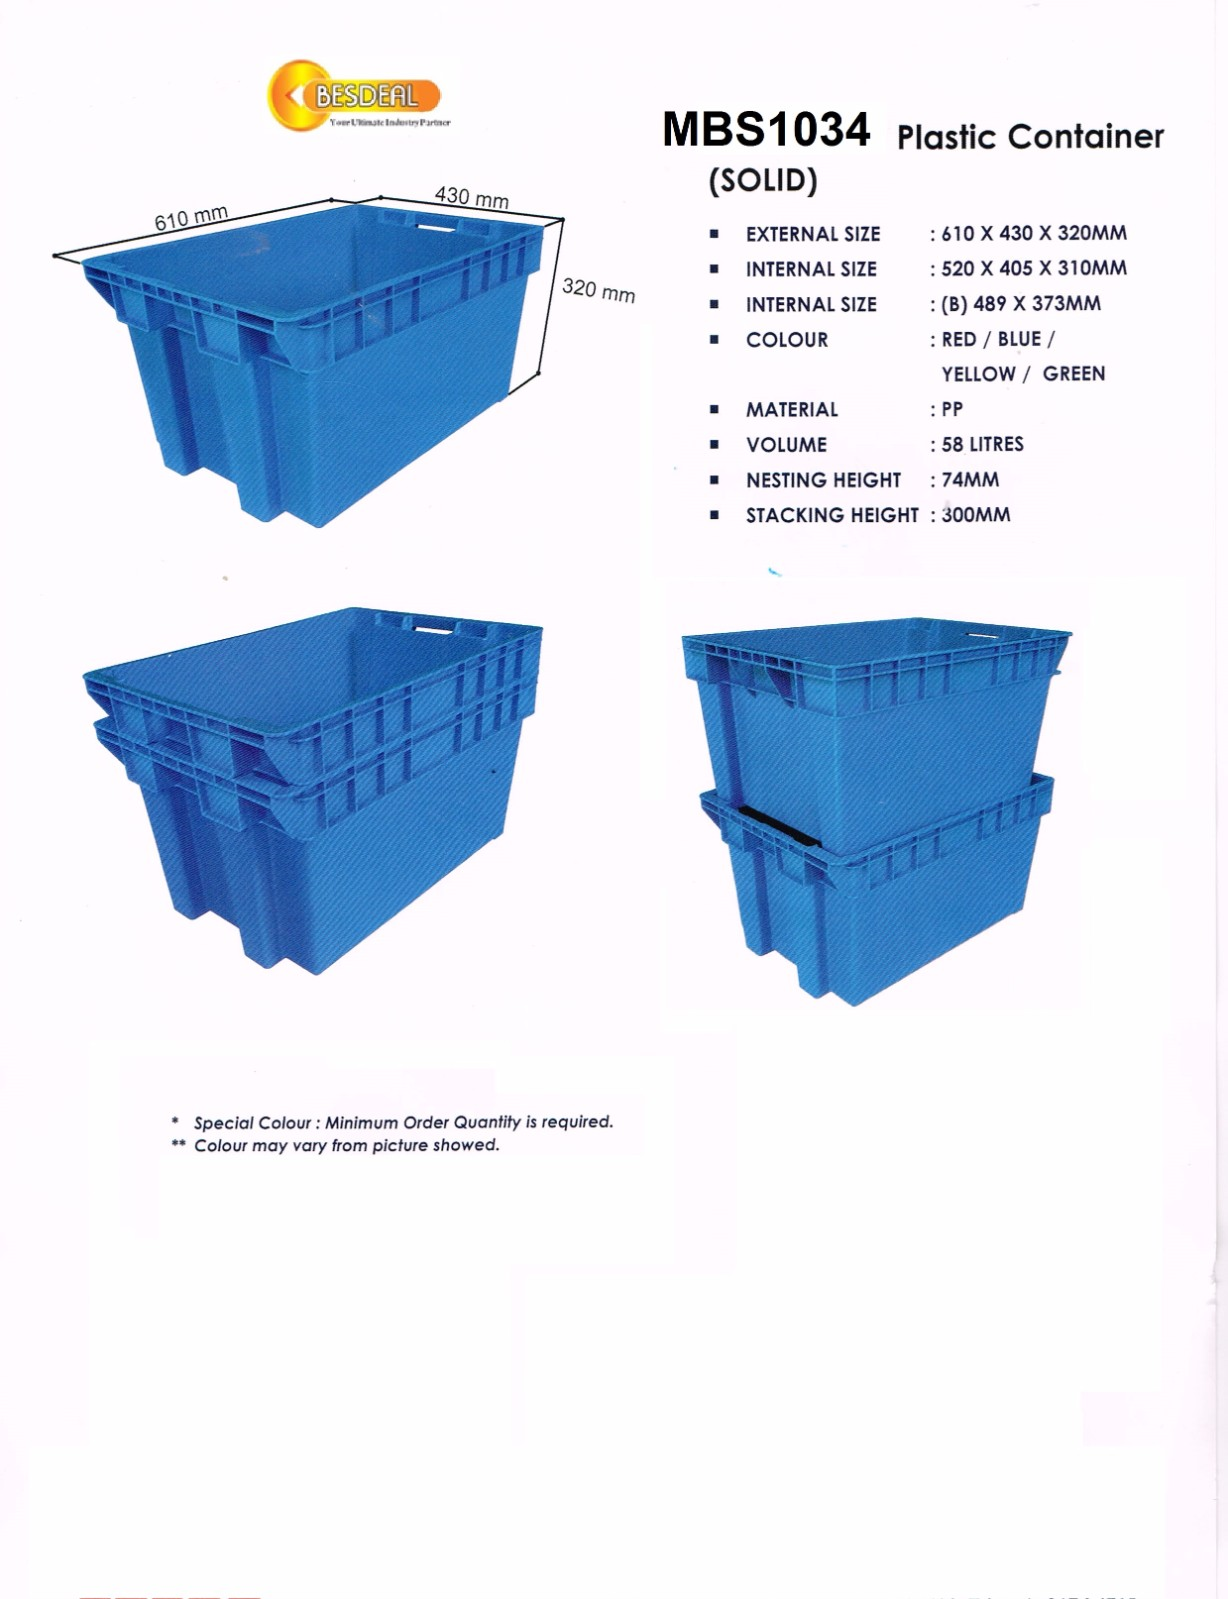 Plastic Container Mdl MBS1034